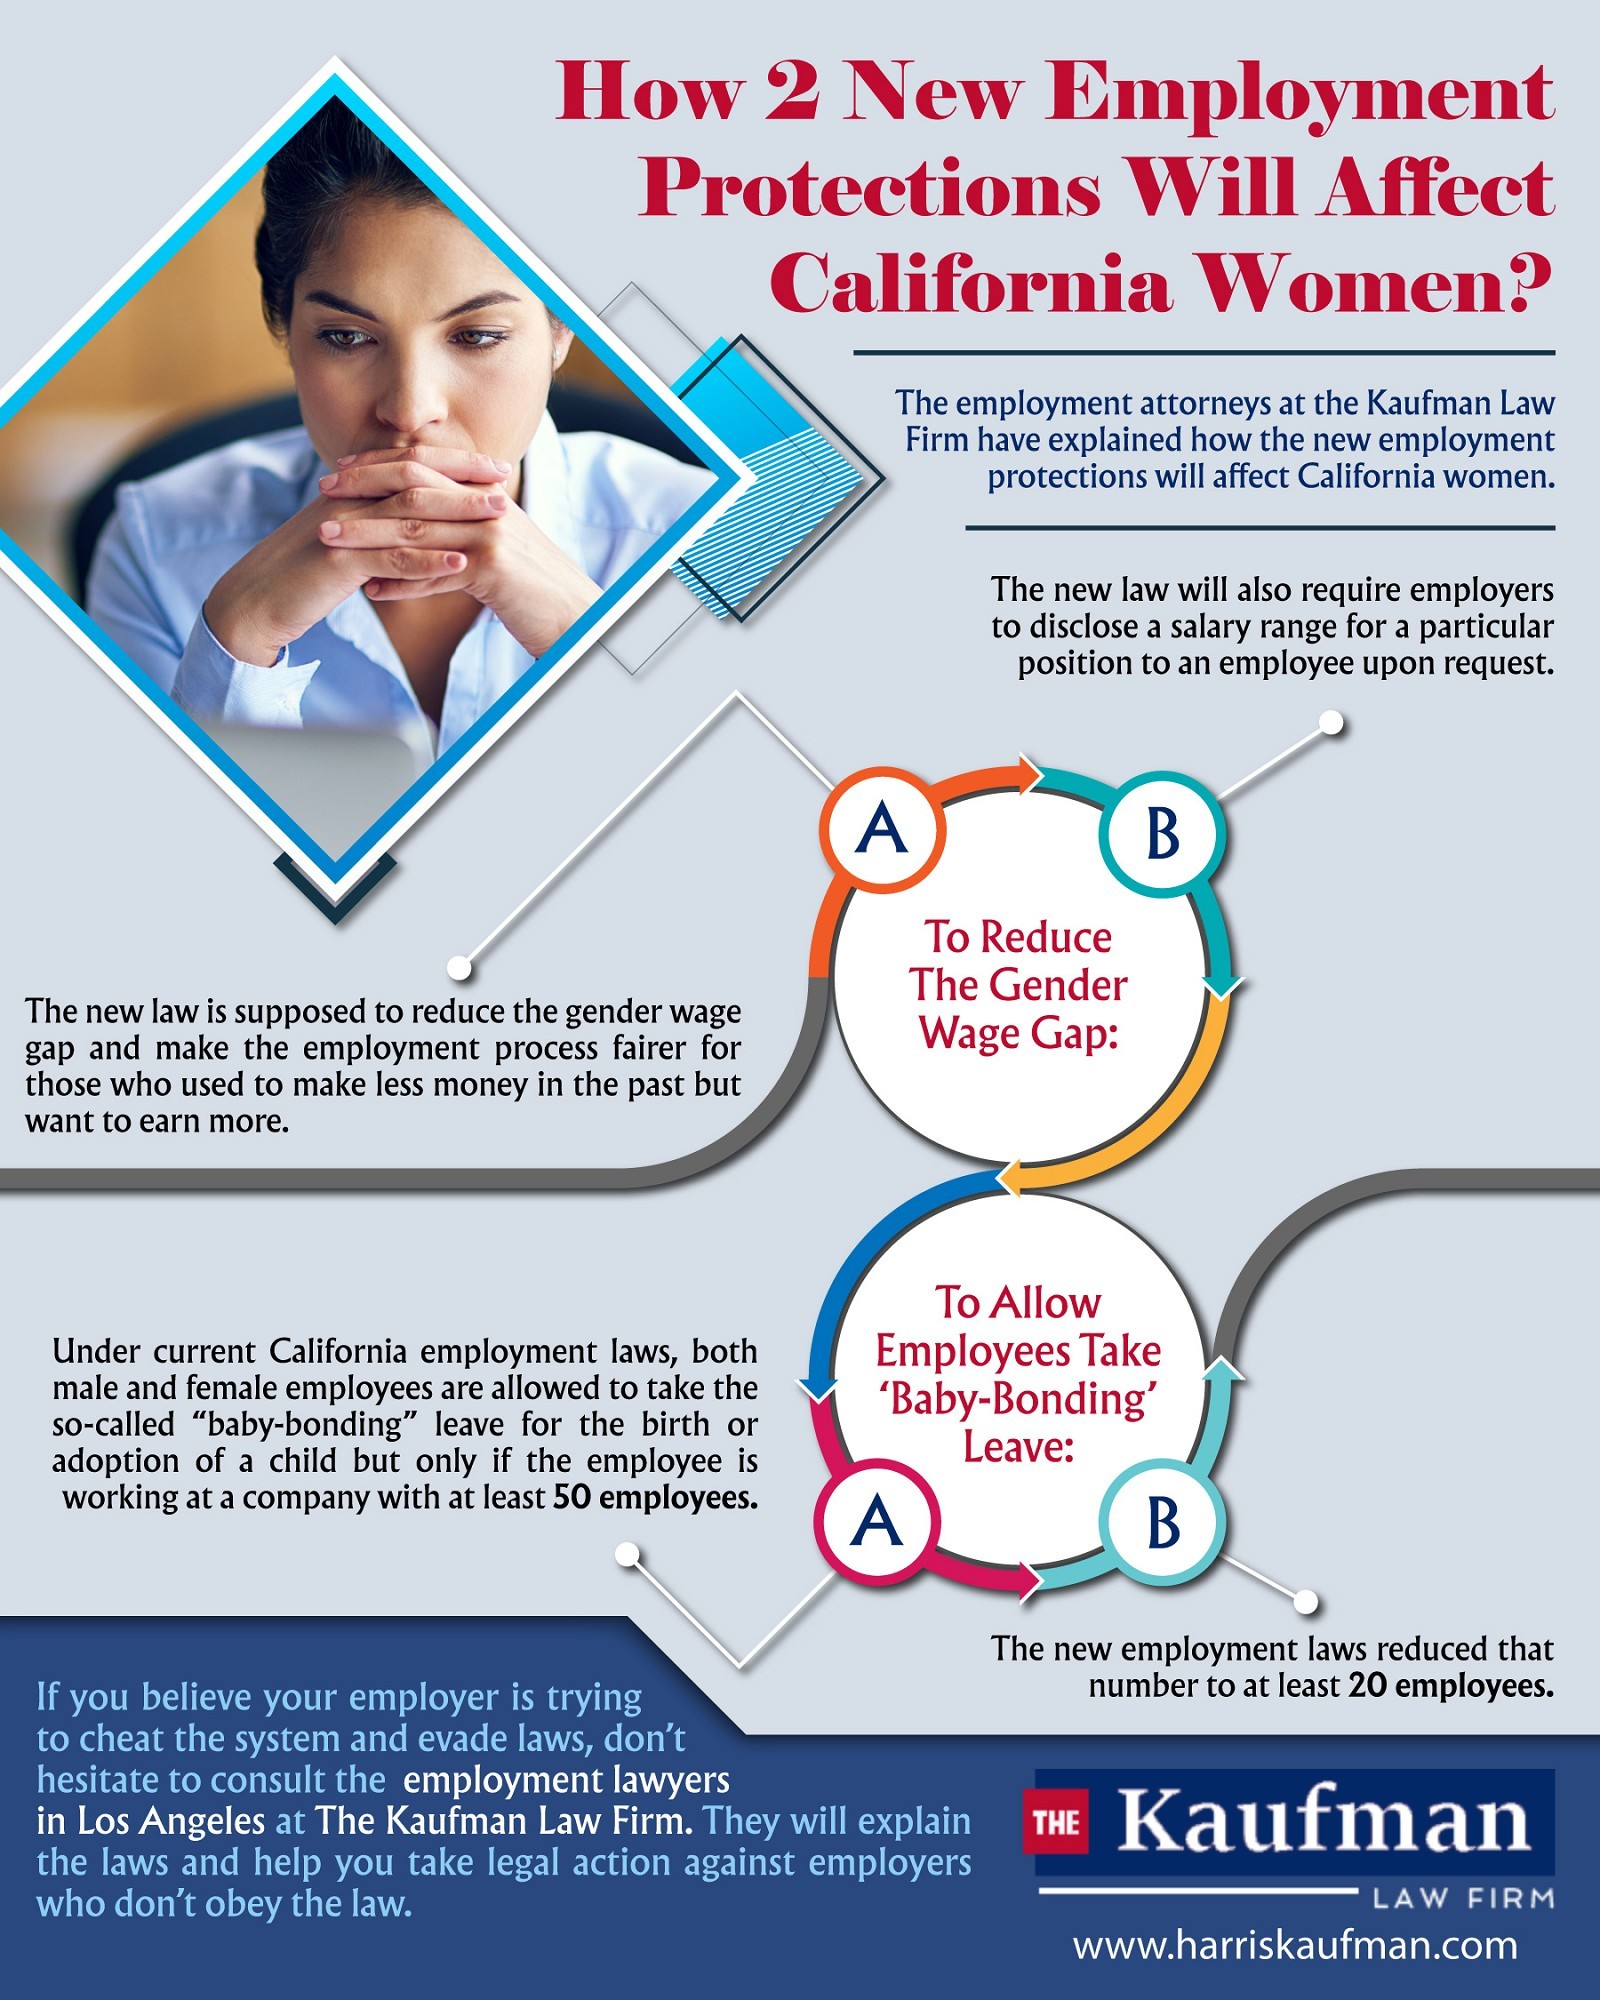 How 2 New Employment Protections Will Affect California Women?